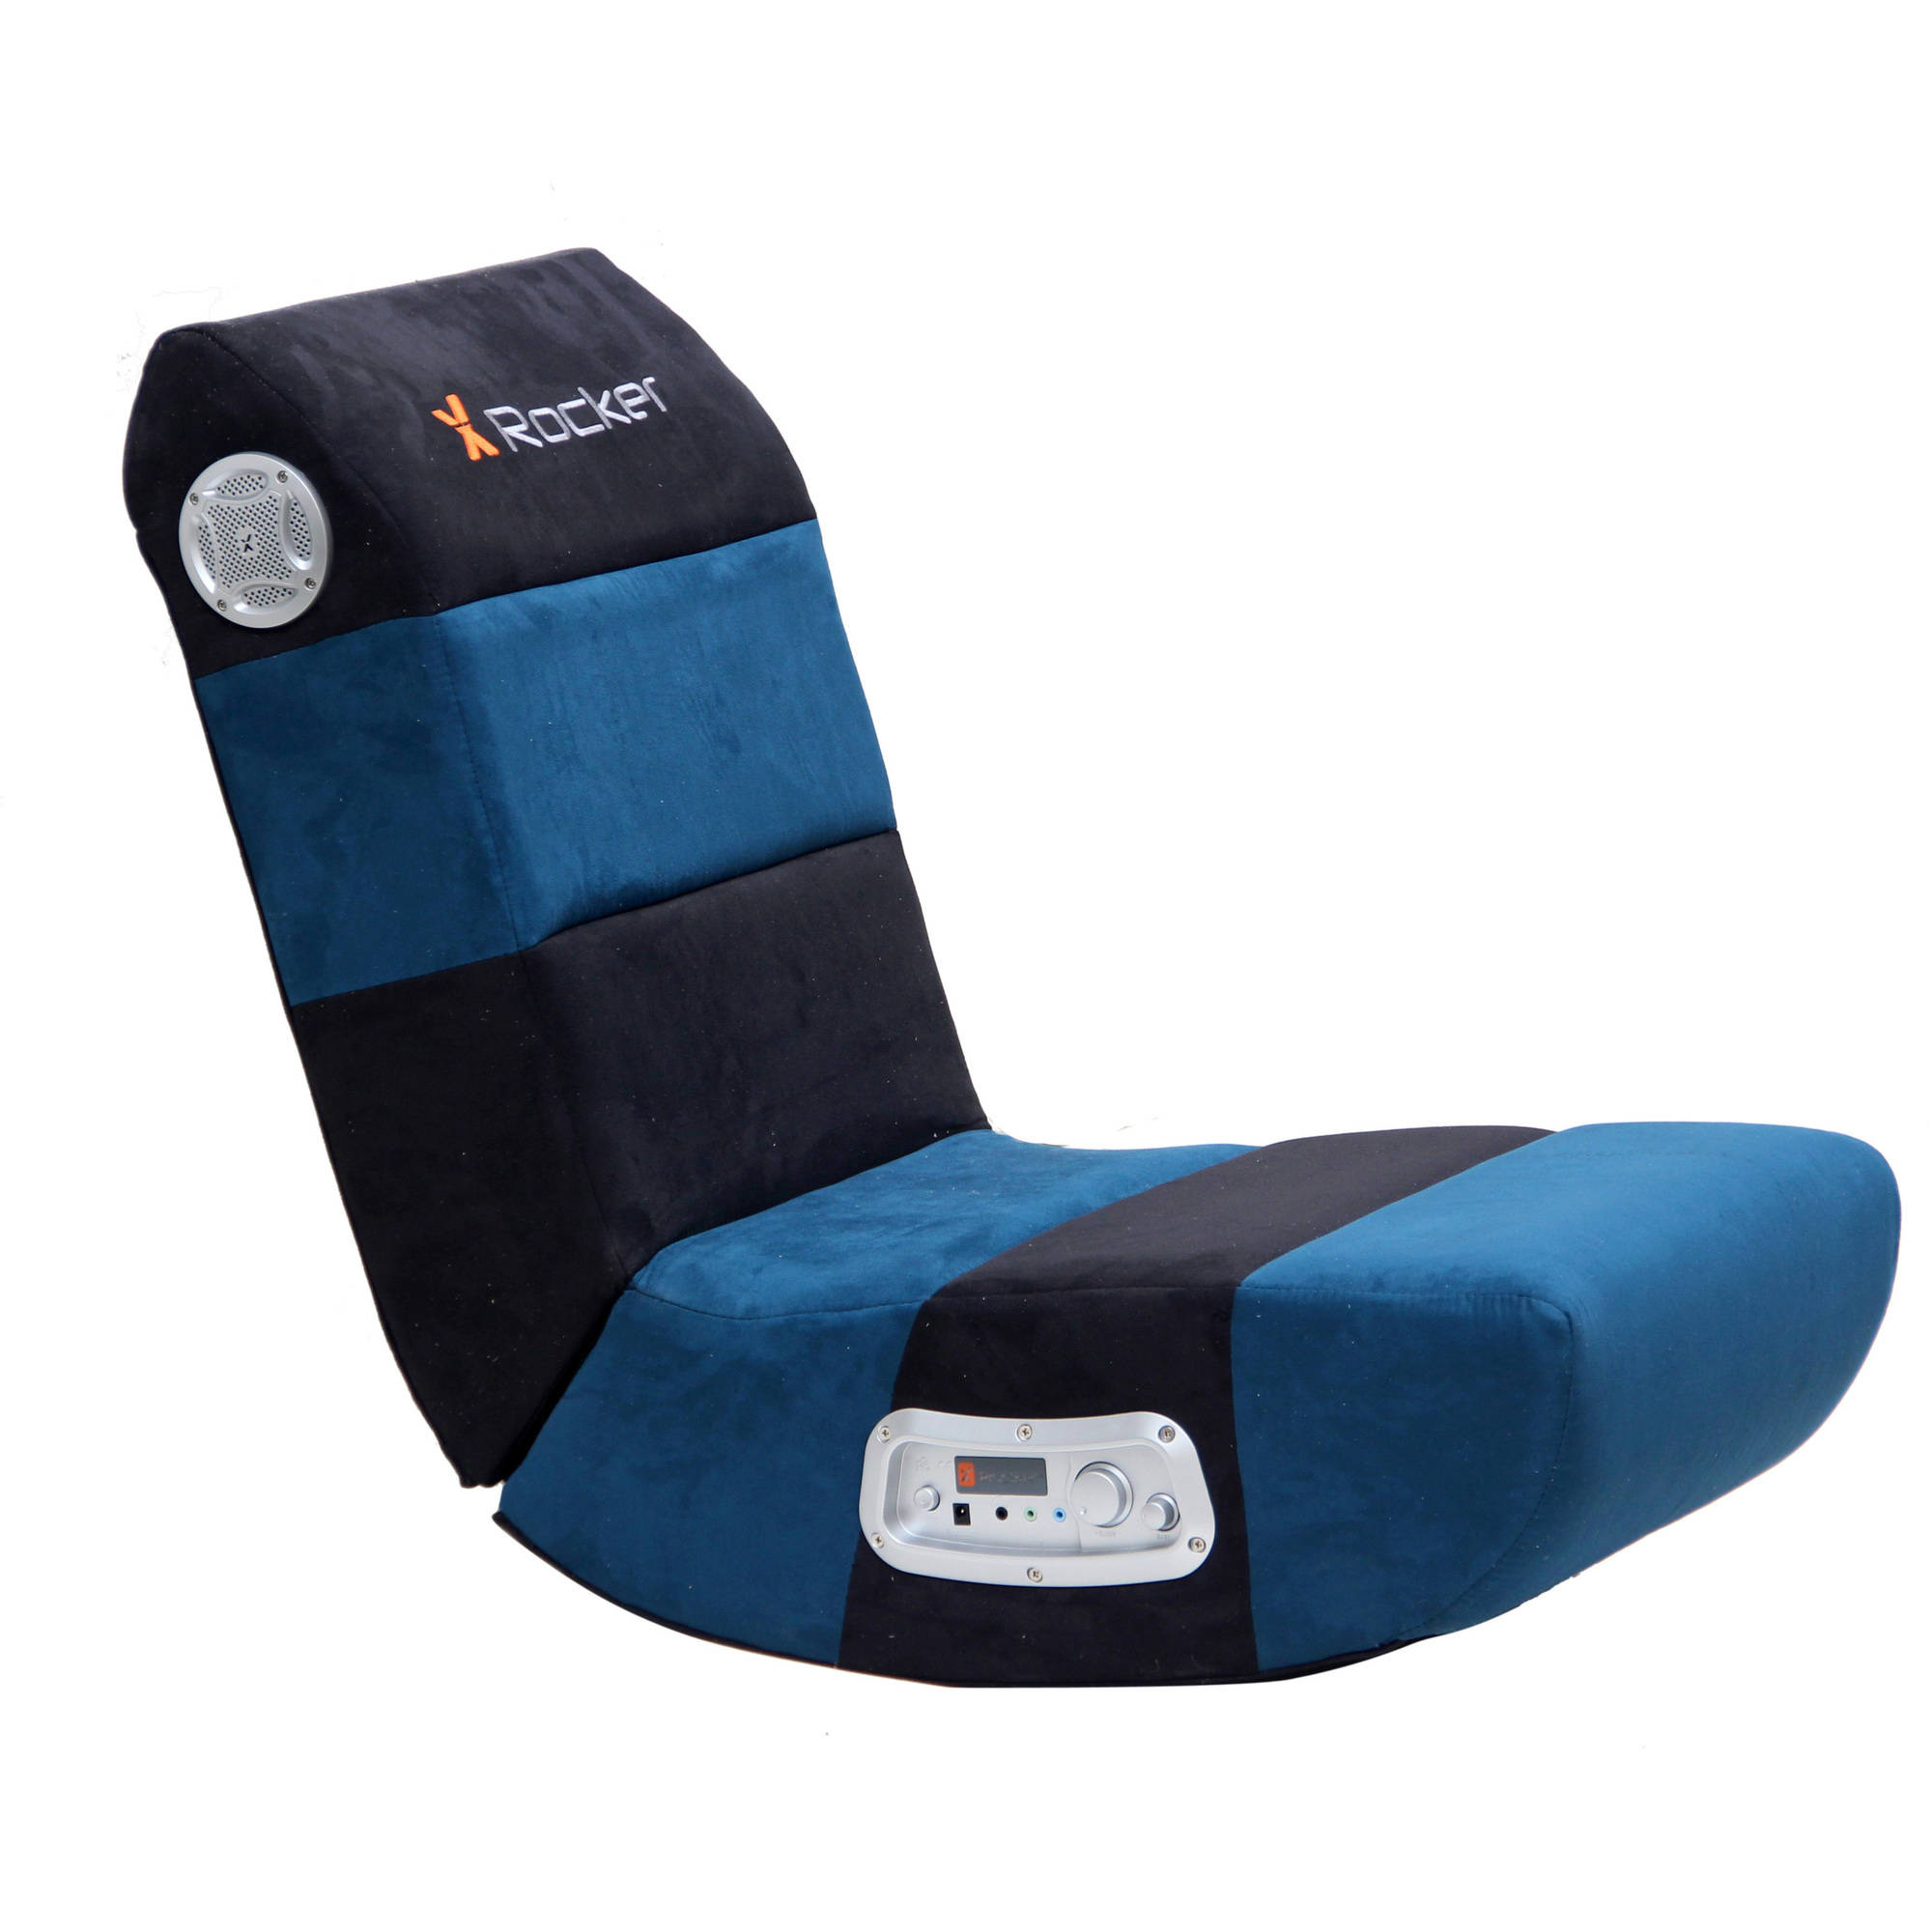 X Rocker 2.1 Wired Audio Chair, Black/Teal